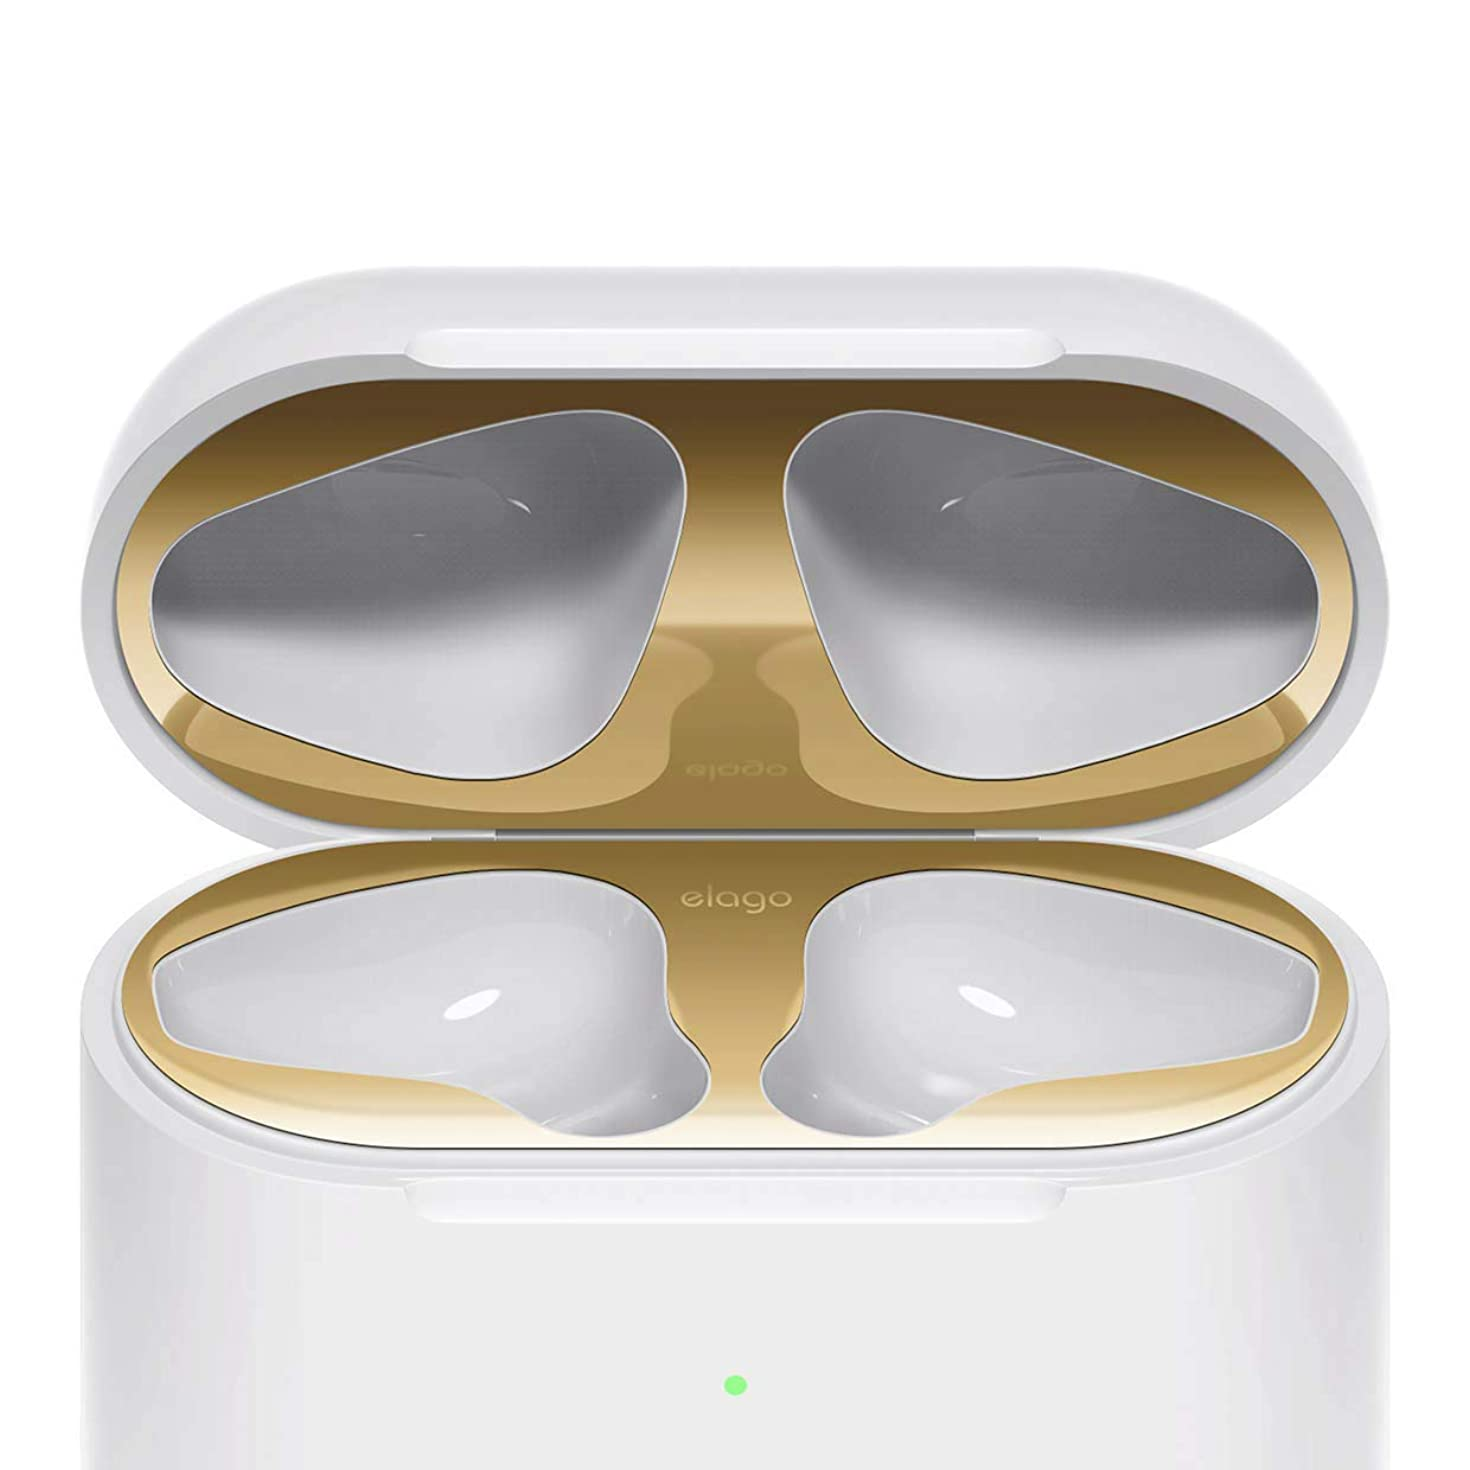 elago Dust Guard for AirPods 2 Wireless Charging Case [Gold][2 Sets] - [18K Gold Plating][Protect AirPods from Iron/Metal Shavings][Watch Installation Video]